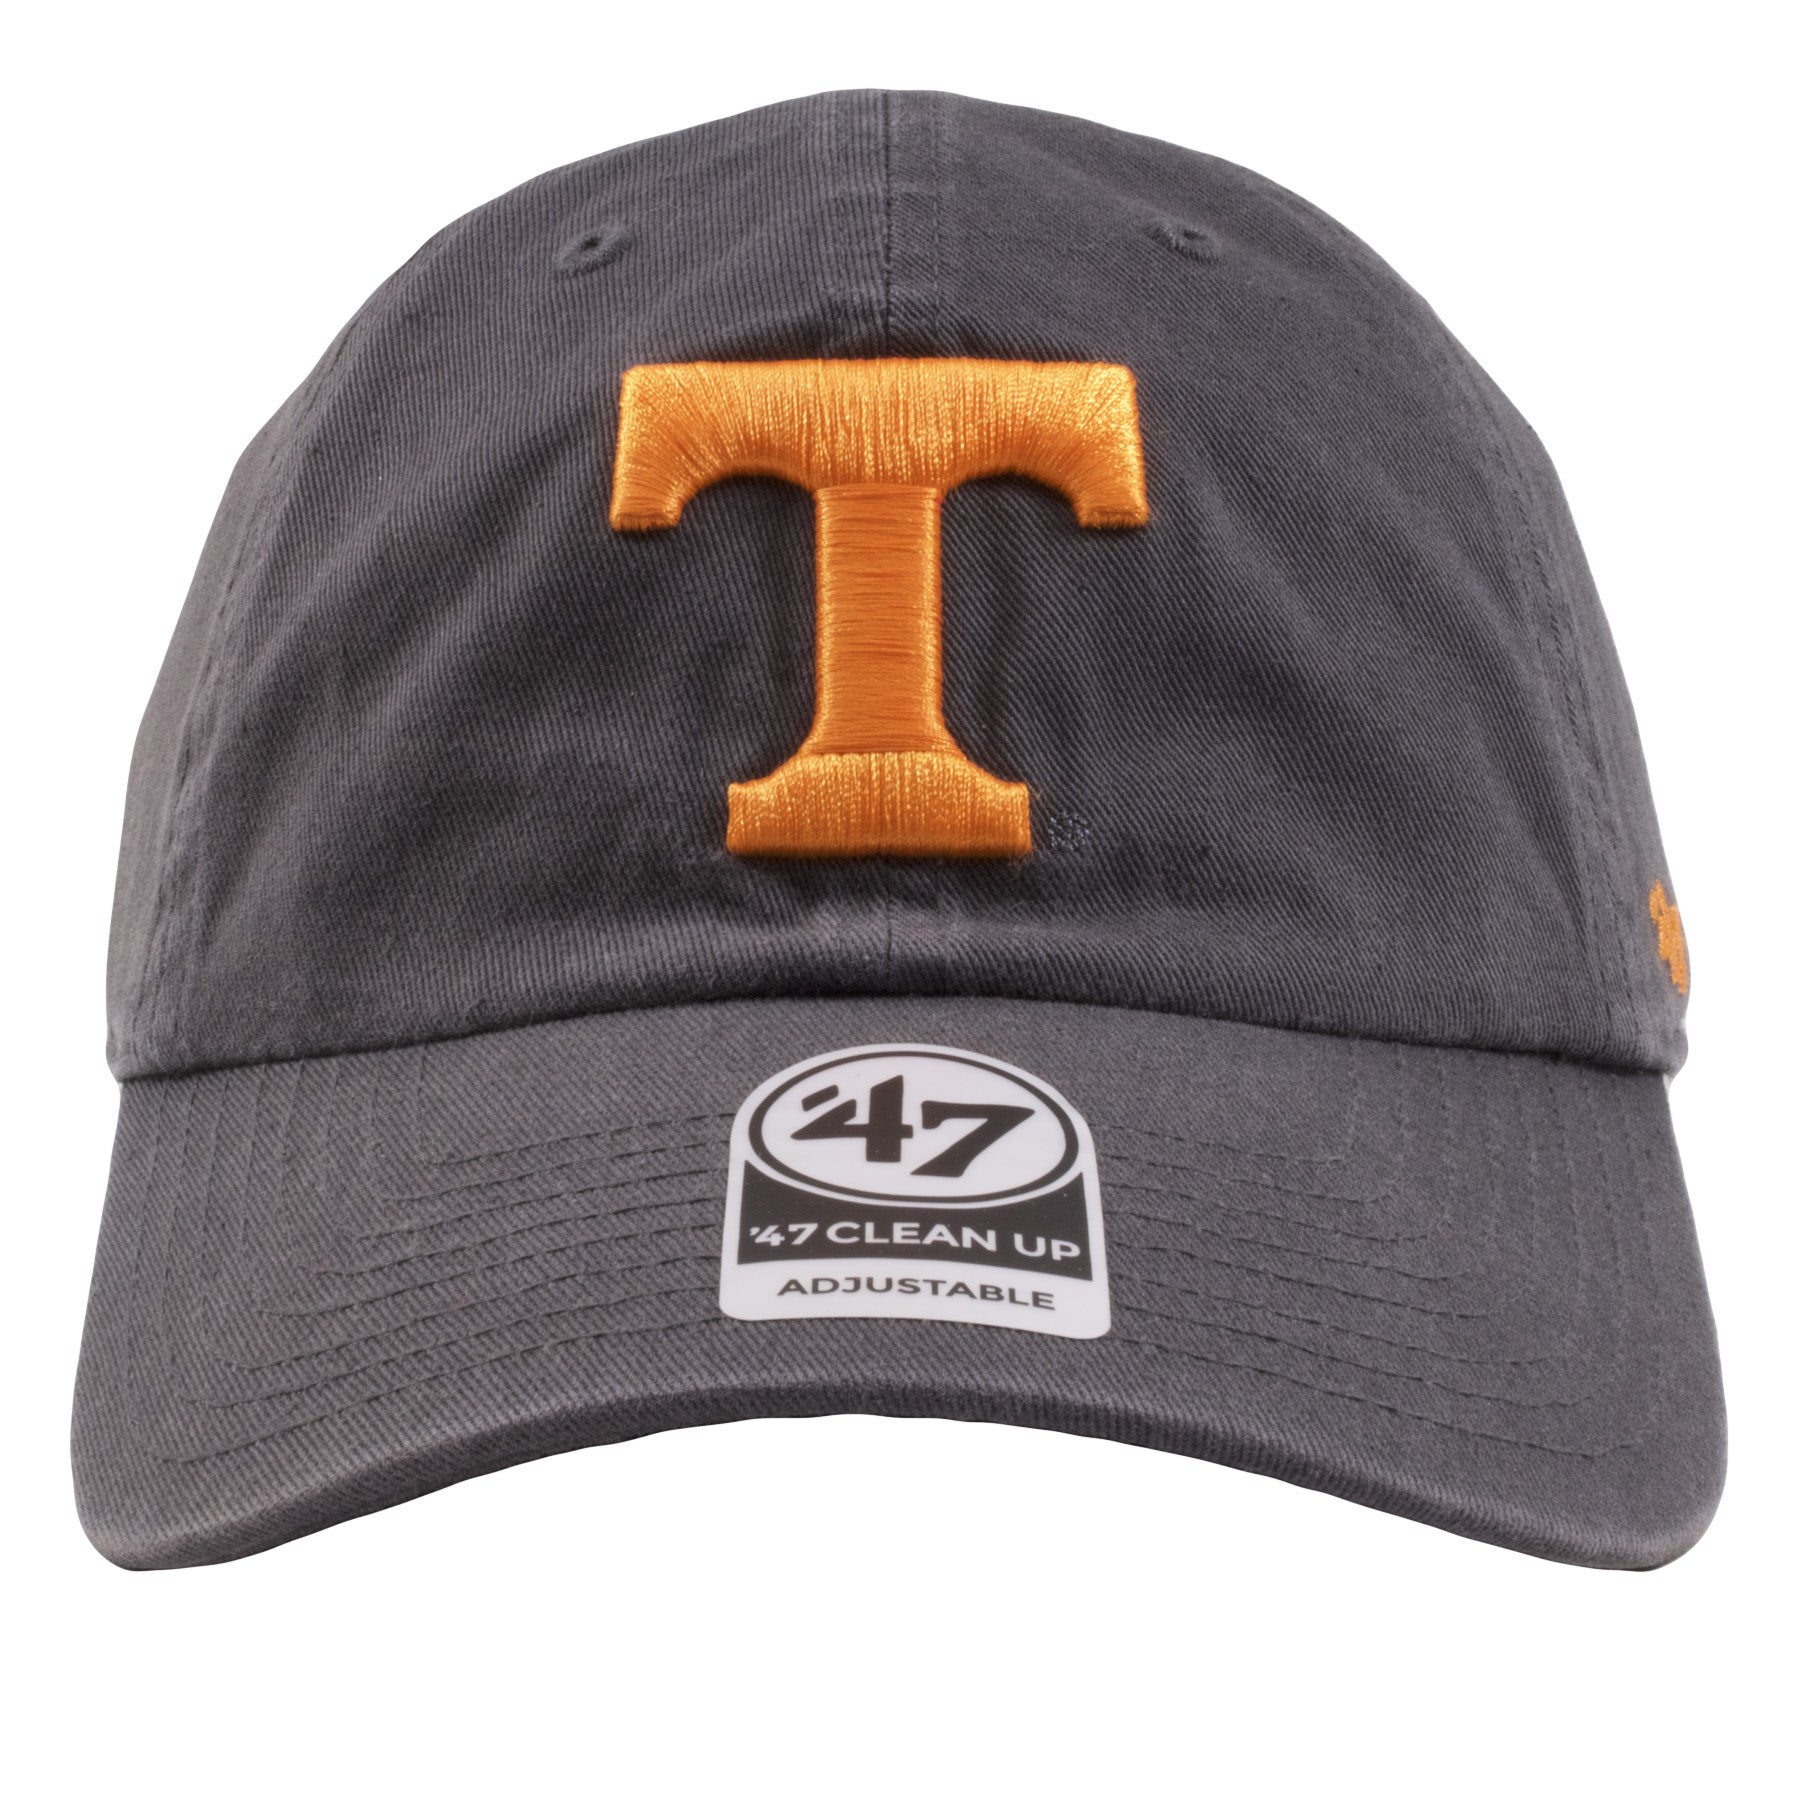 meet f7345 a5cd7 Embroidered on the front of the University of Tennessee Volunteers gray  adjustable dad hat is the